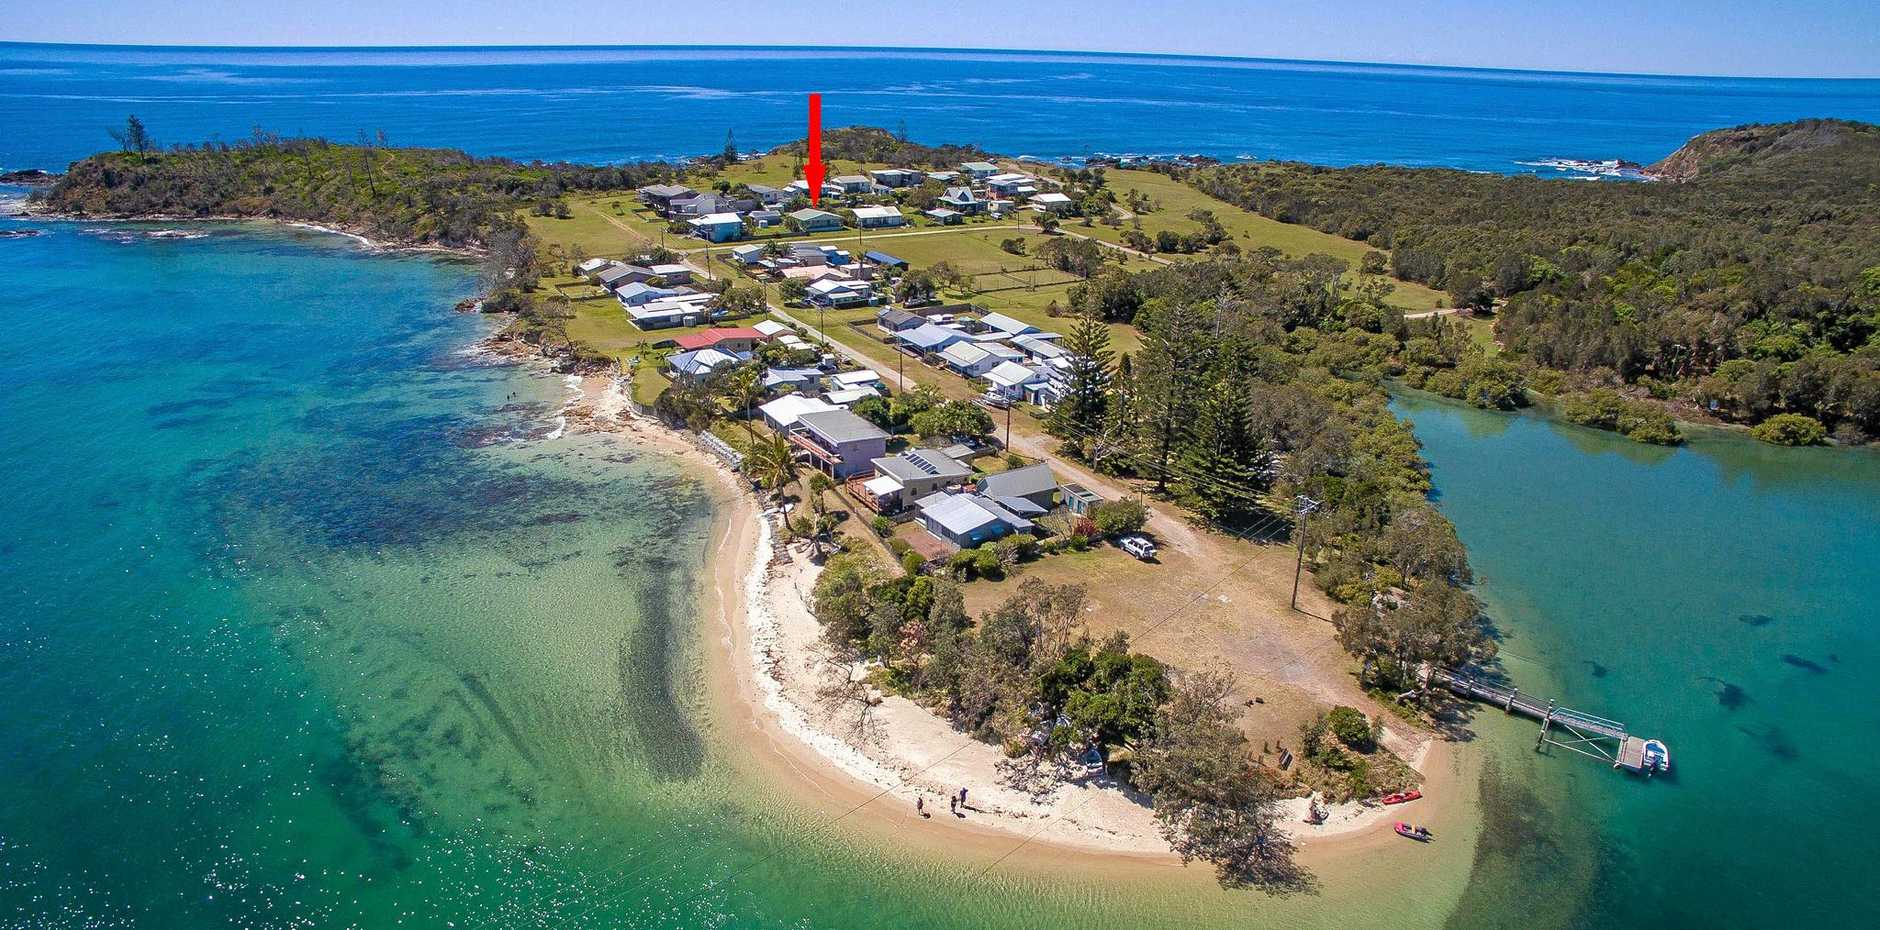 PICTURE PERFECT: Surrounded by National Park, the isolation of this Sandon house, up for sale, just adds to the appeal.